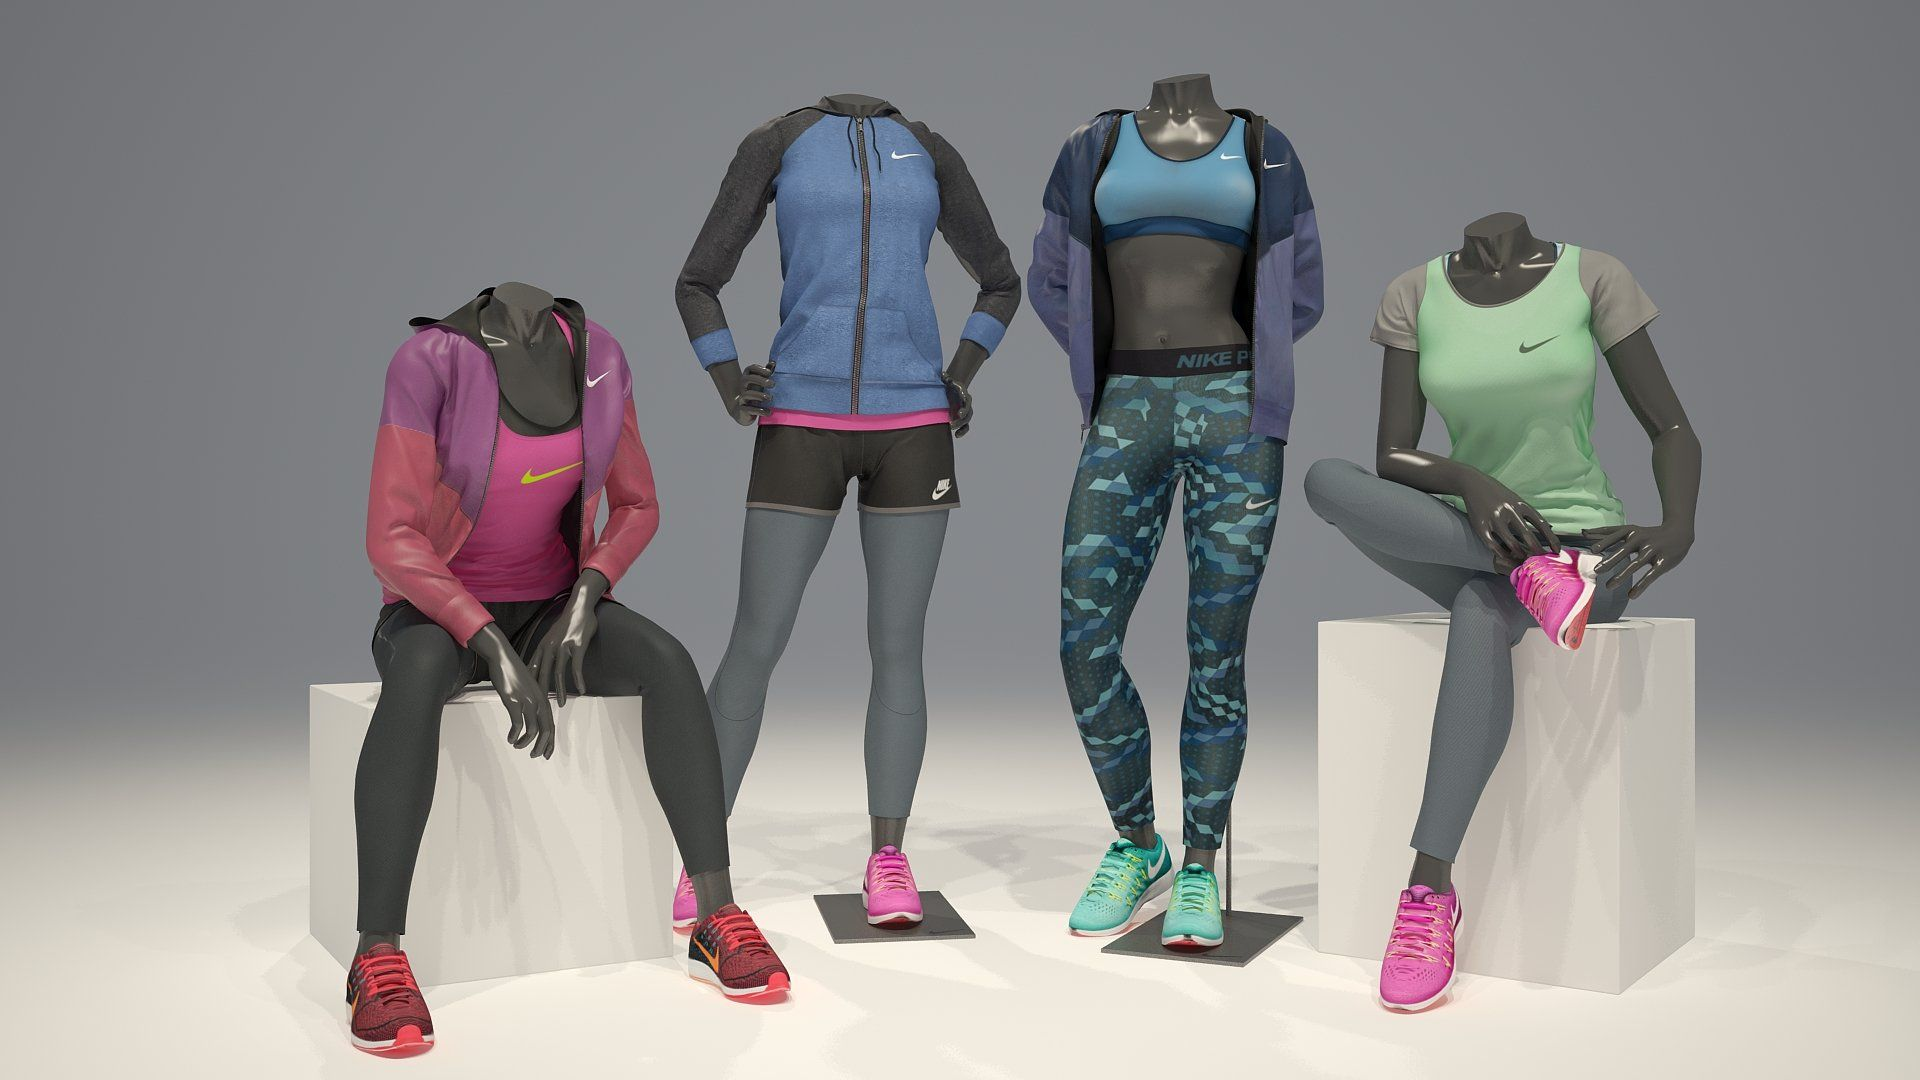 Female mannequin Nike FULL PACK (With images) 3d model